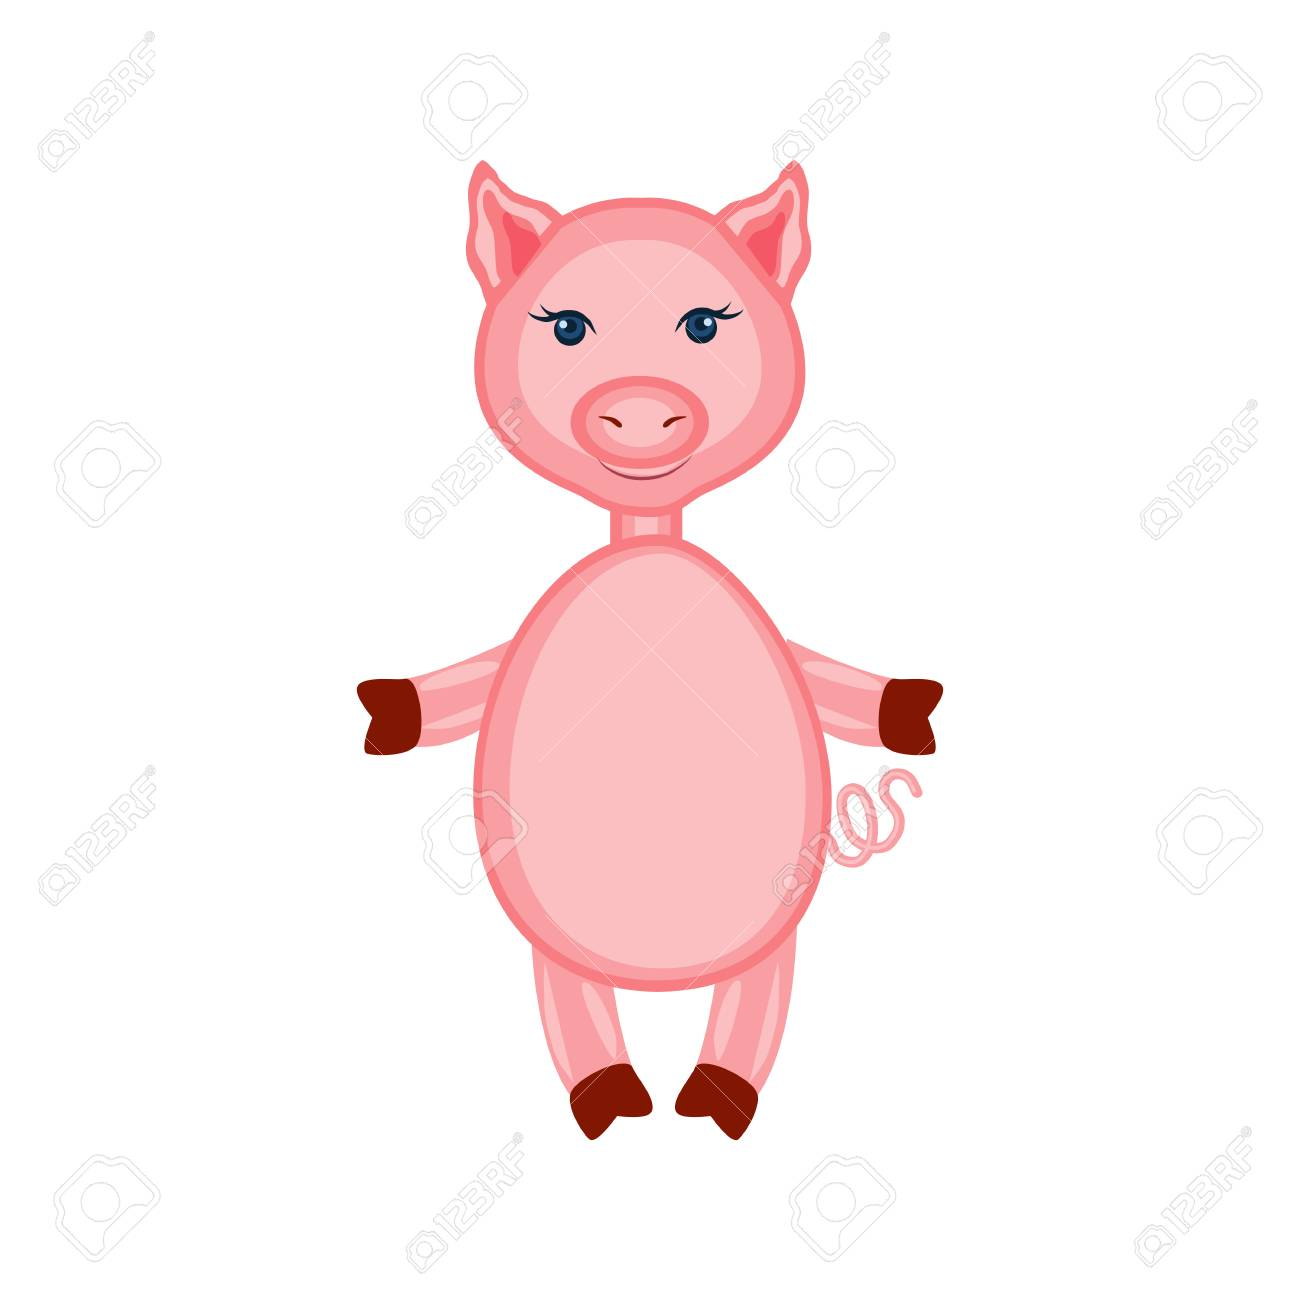 cartoon cute pink pig standing isolated on white royalty free